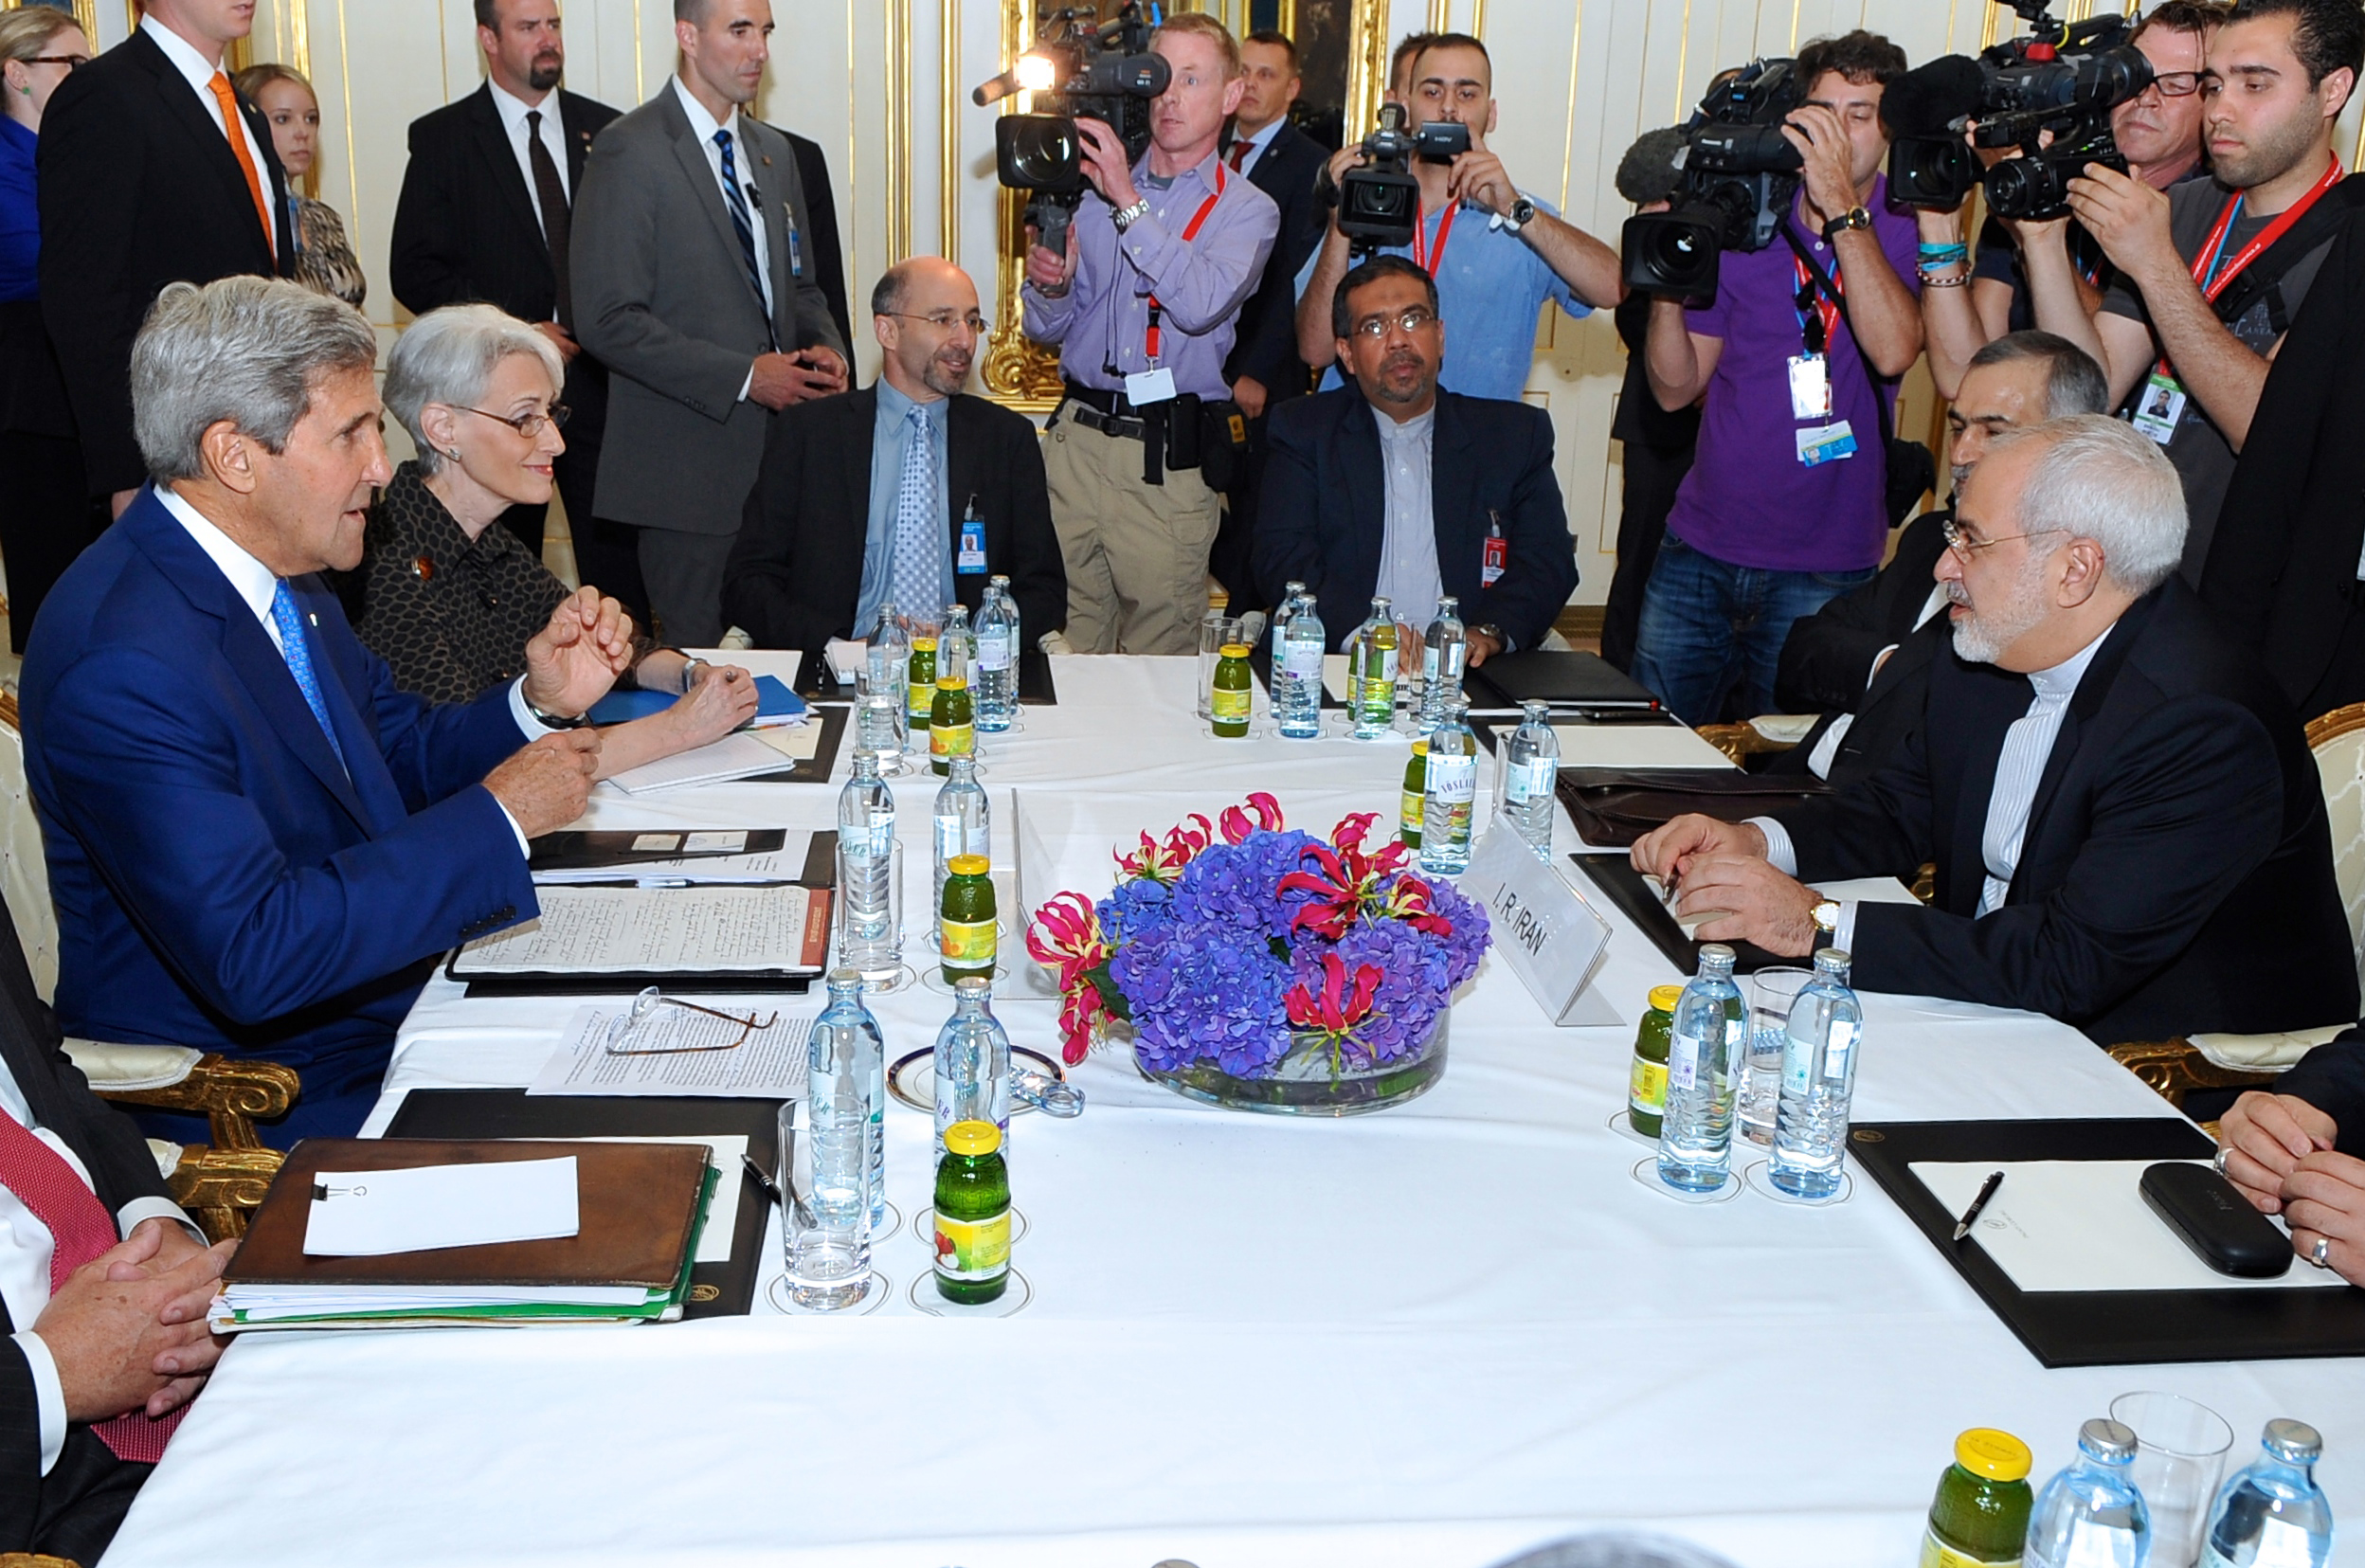 Secretary_Kerry,_Iranian_Foreign_Minister_Zarif_Sit_Down_For_Second_Day_of_Nuclear_Talks_in_Vienna (1)